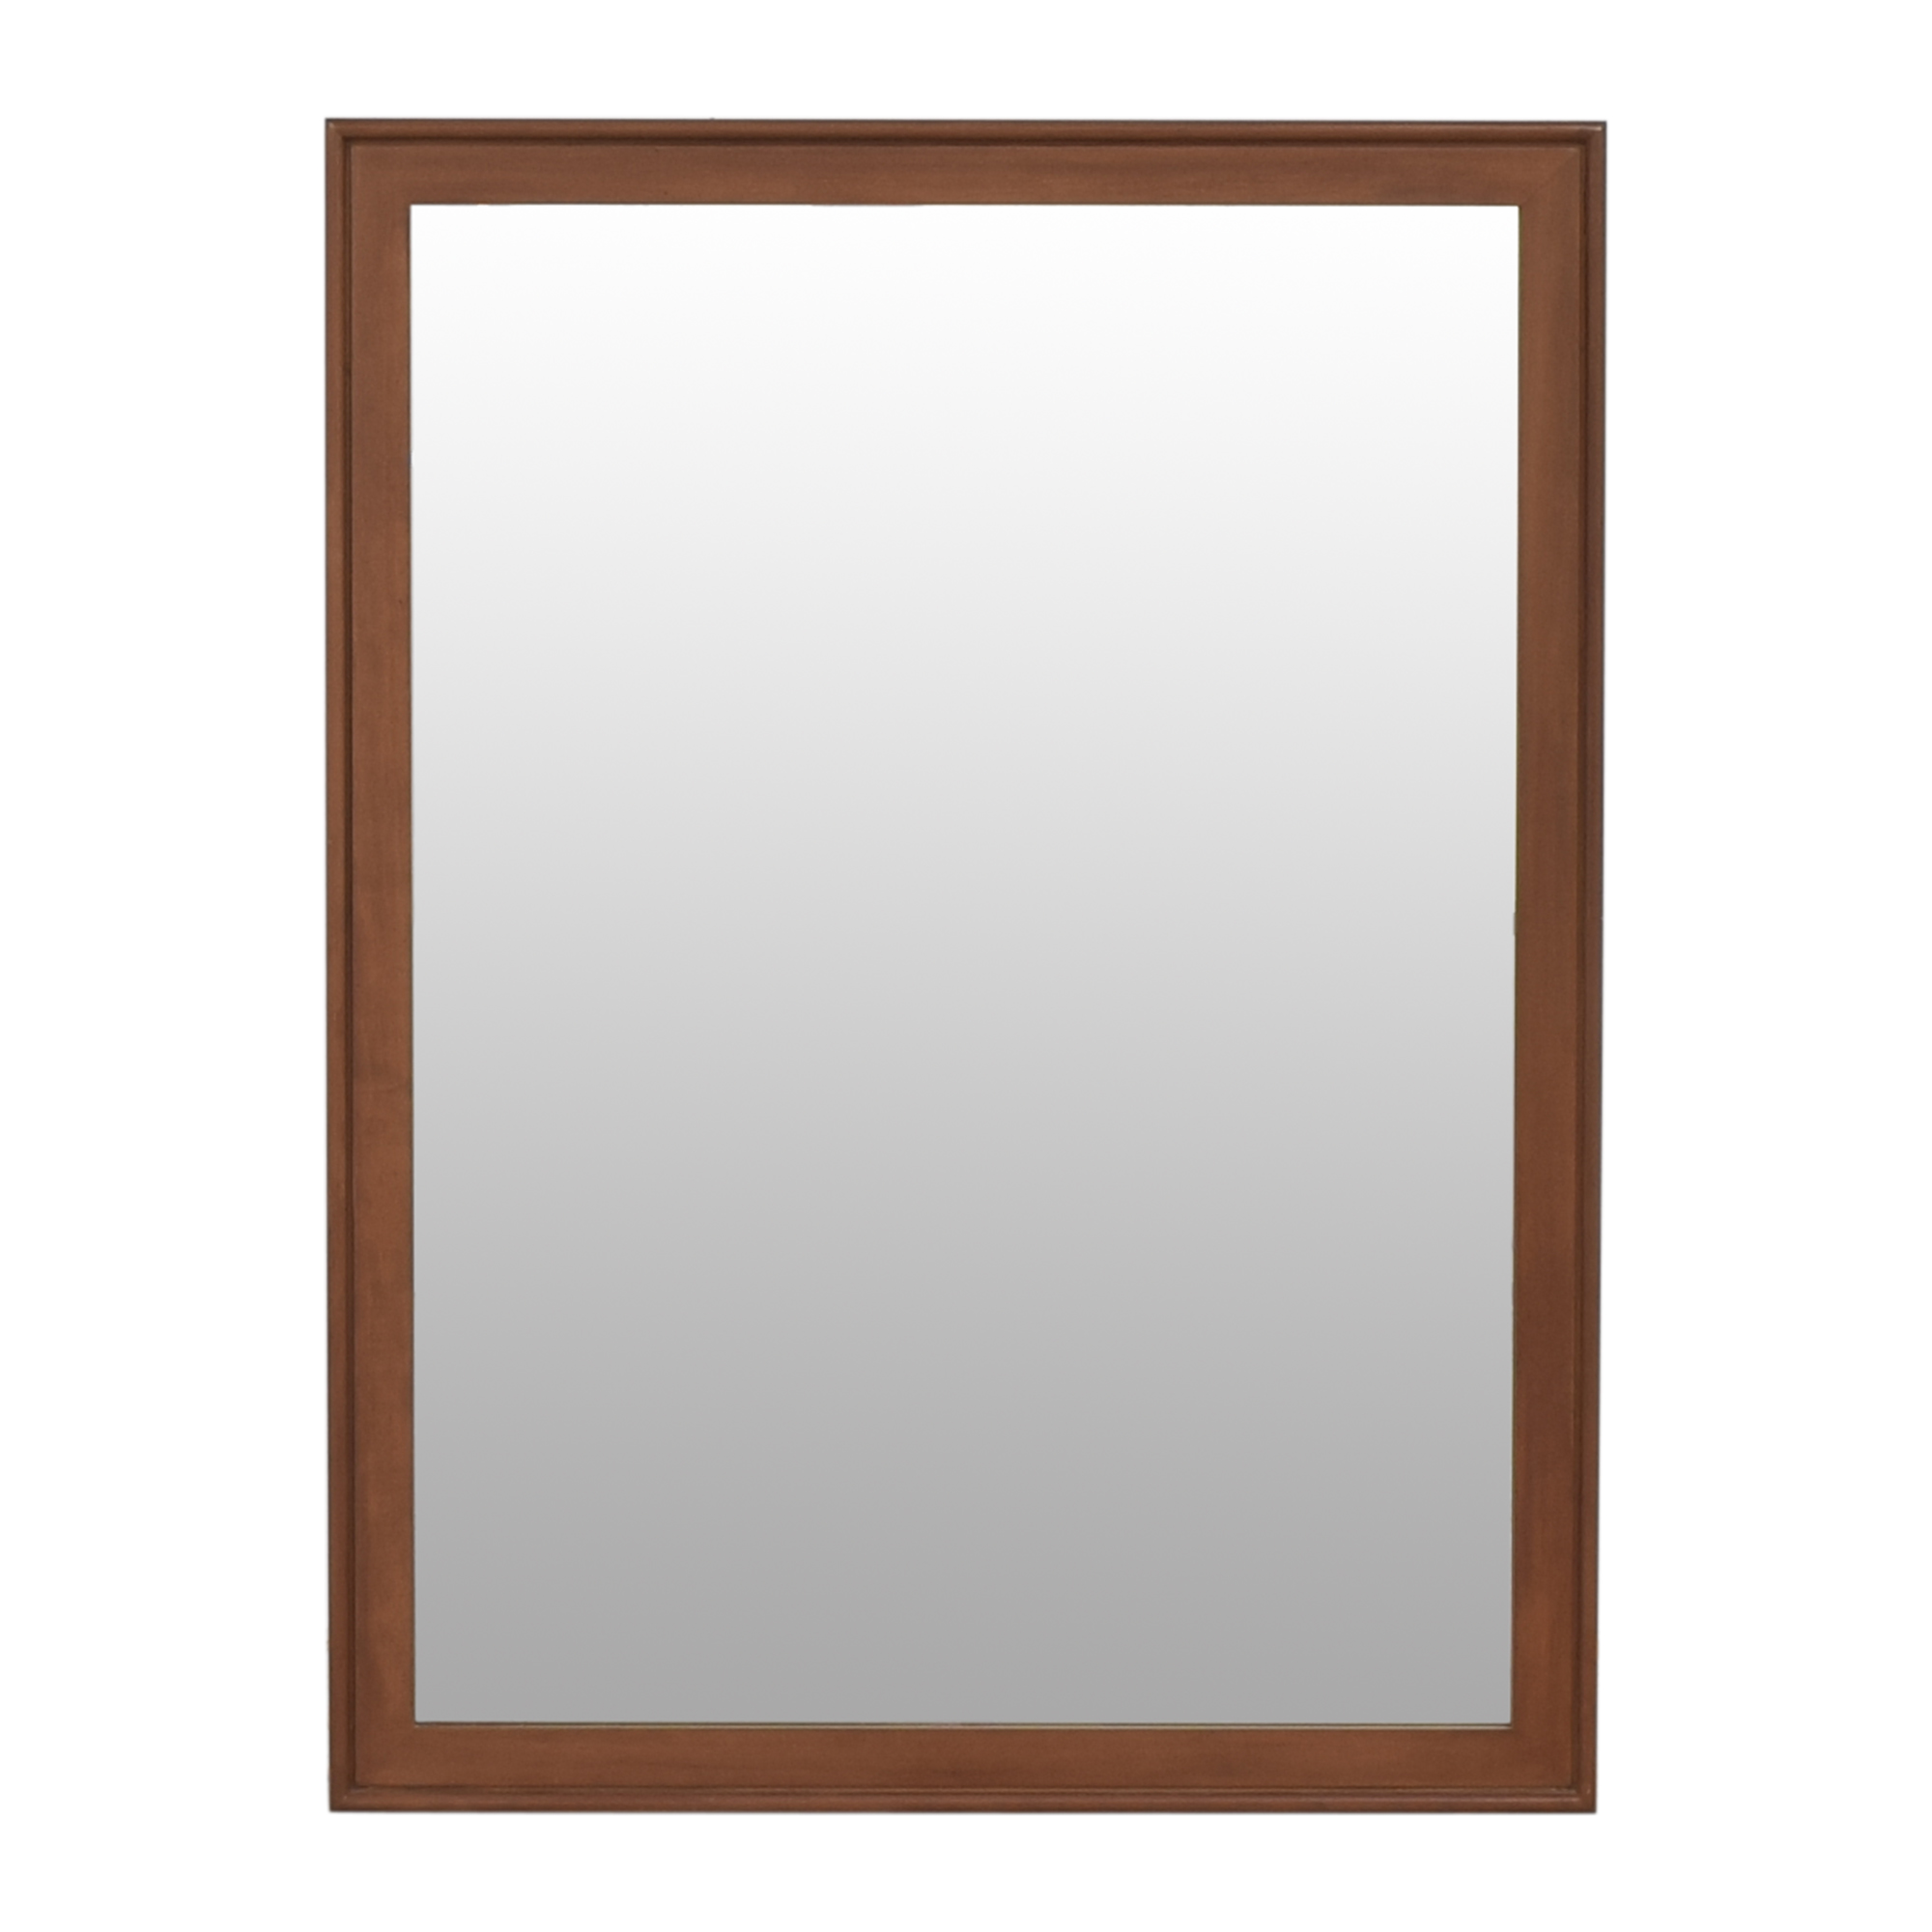 Urbangreen Furniture Urbangreen Furniture Mid Century Wall Mirror brown